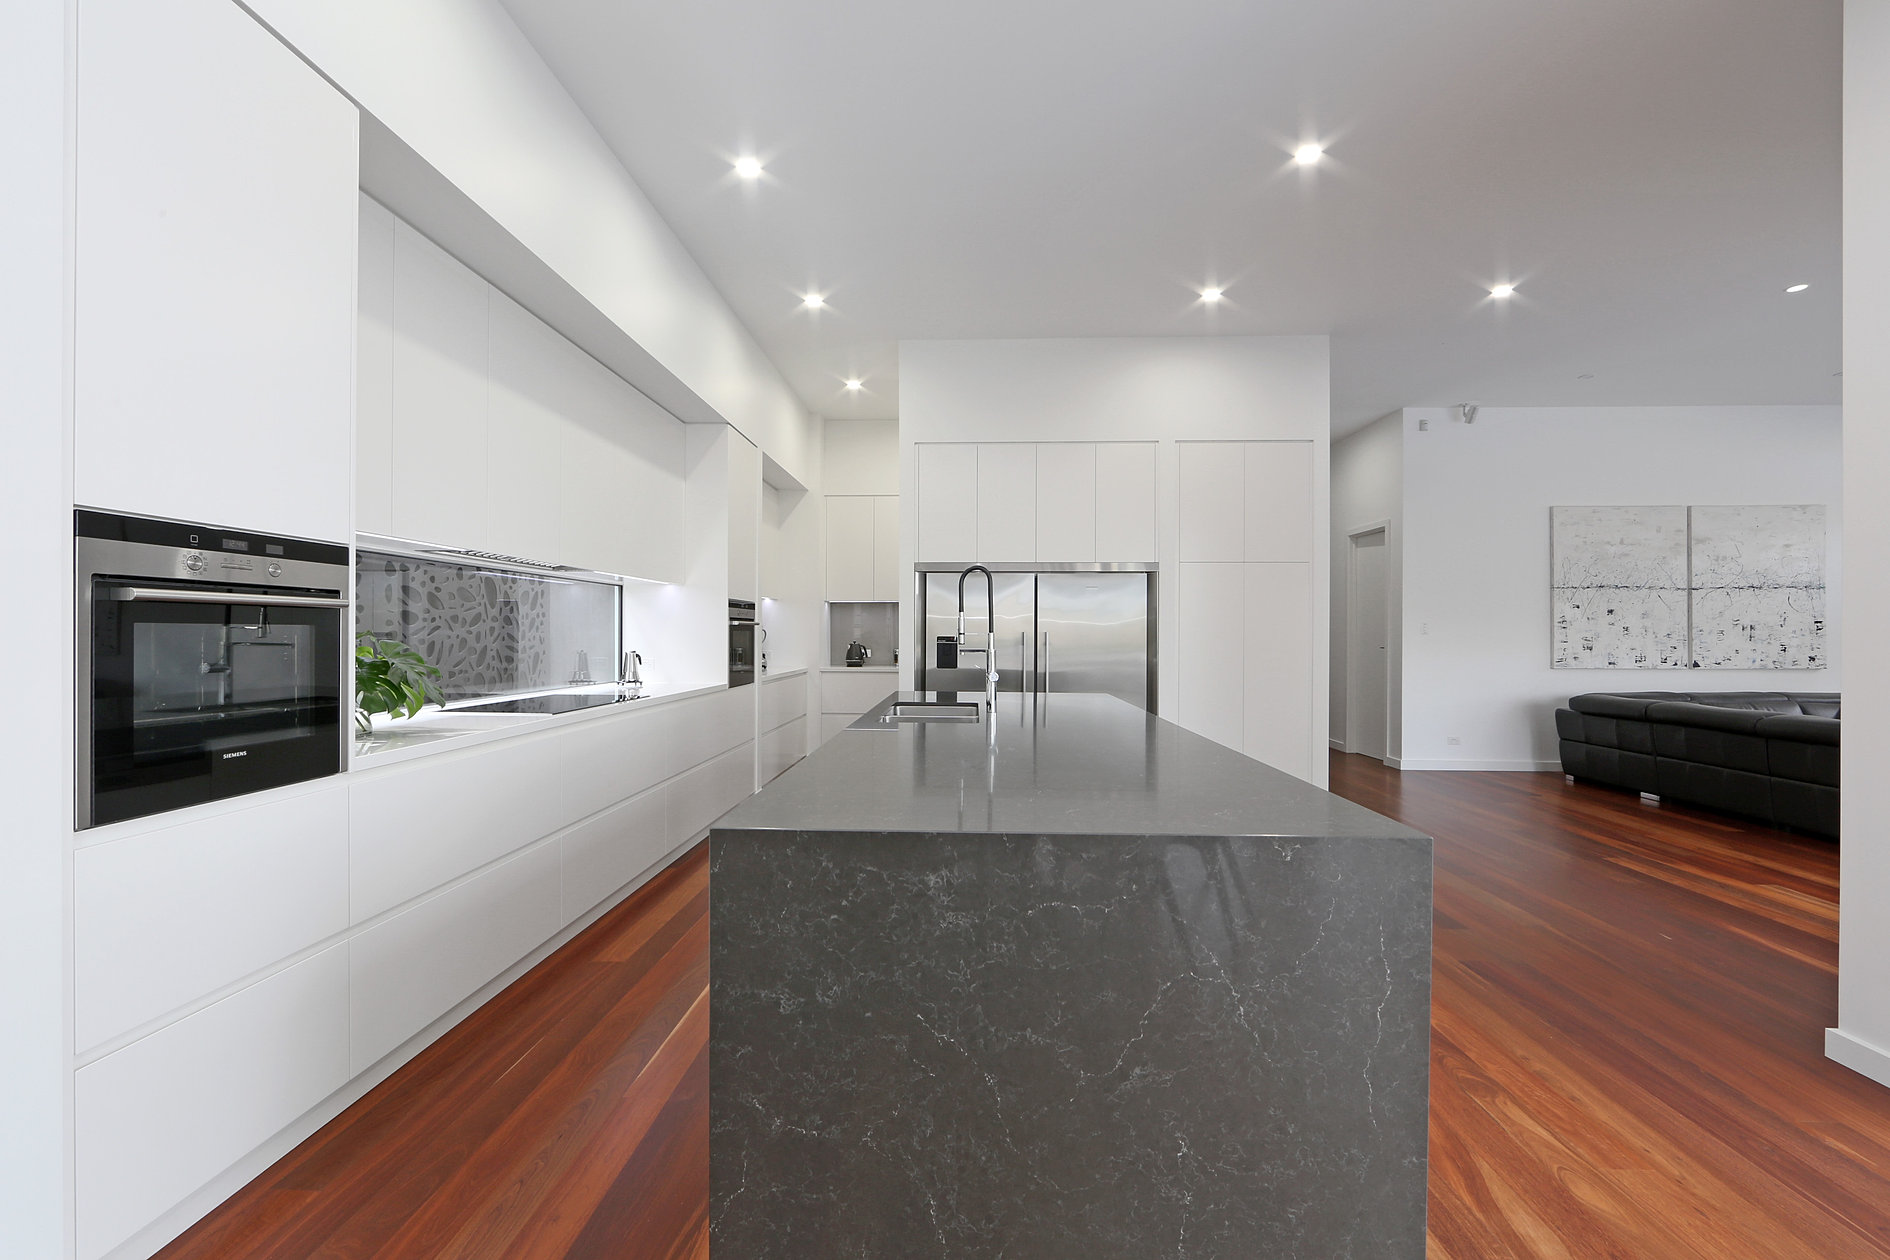 Exellent kitchen design melbourne renovation brisbane for Kitchen designs melbourne